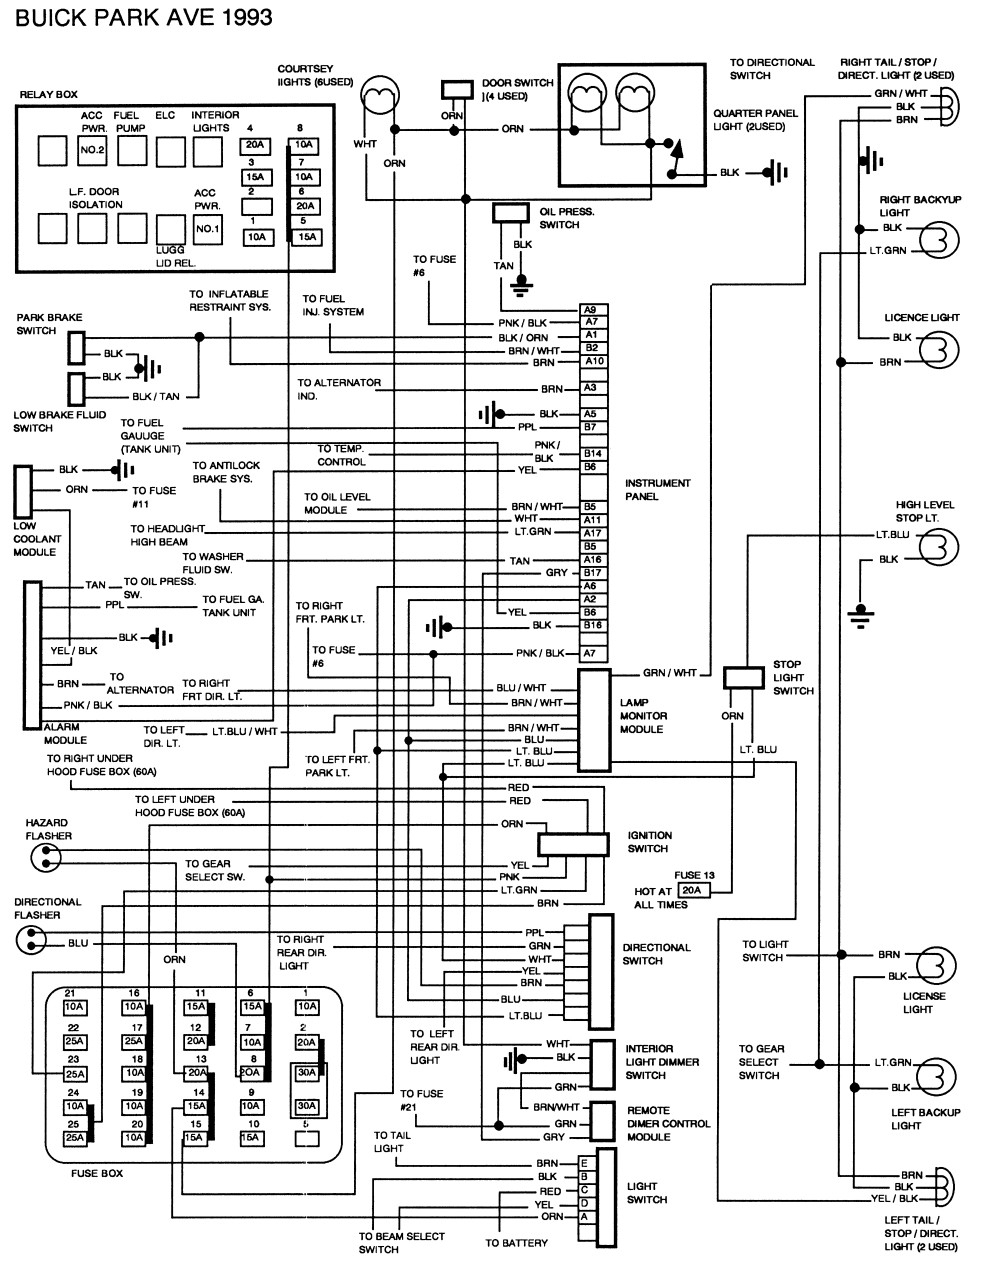 dl1056 wiring diagram wiring diagram rh vw25 vom winnenthal de